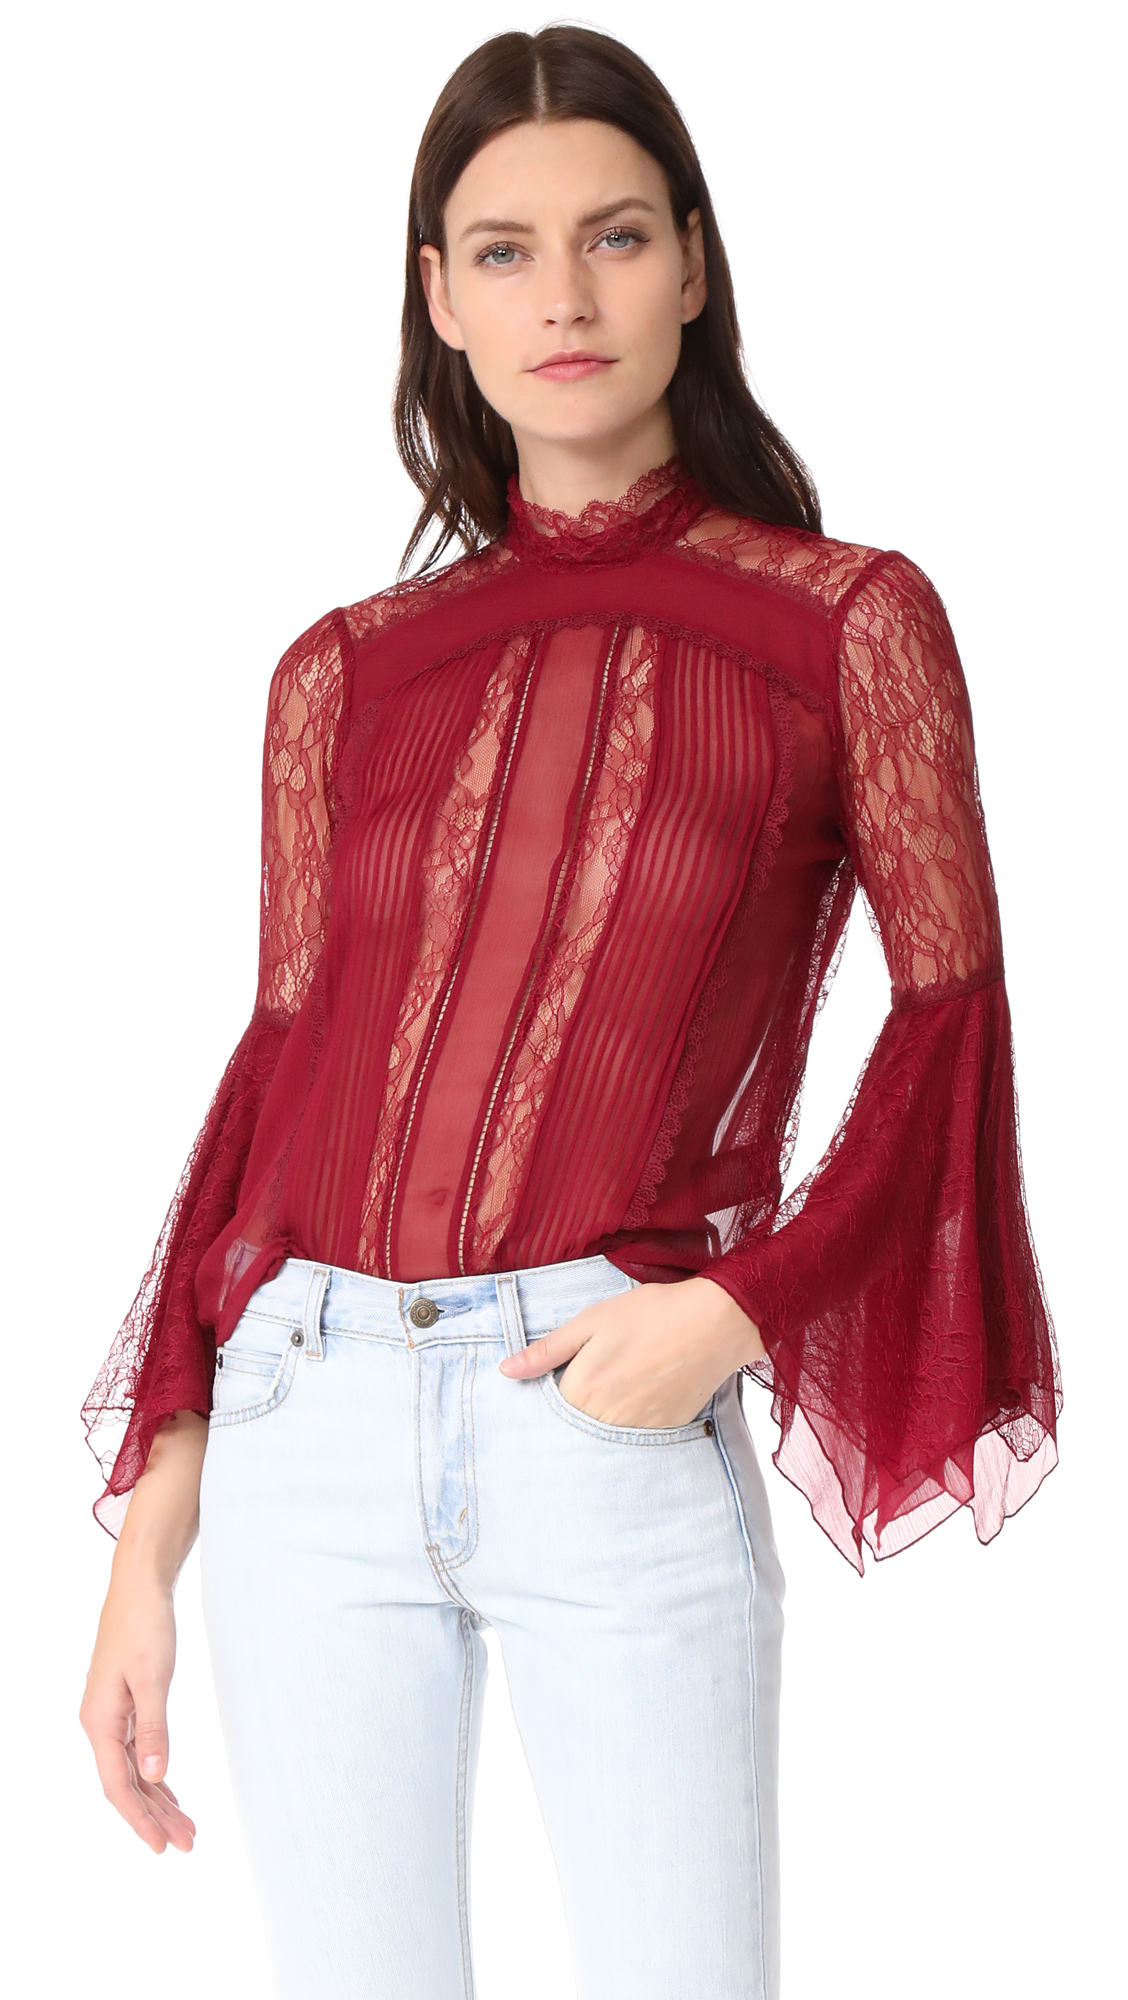 alice + olivia Ivy Handkerchief Sleeve Top - Bordeaux